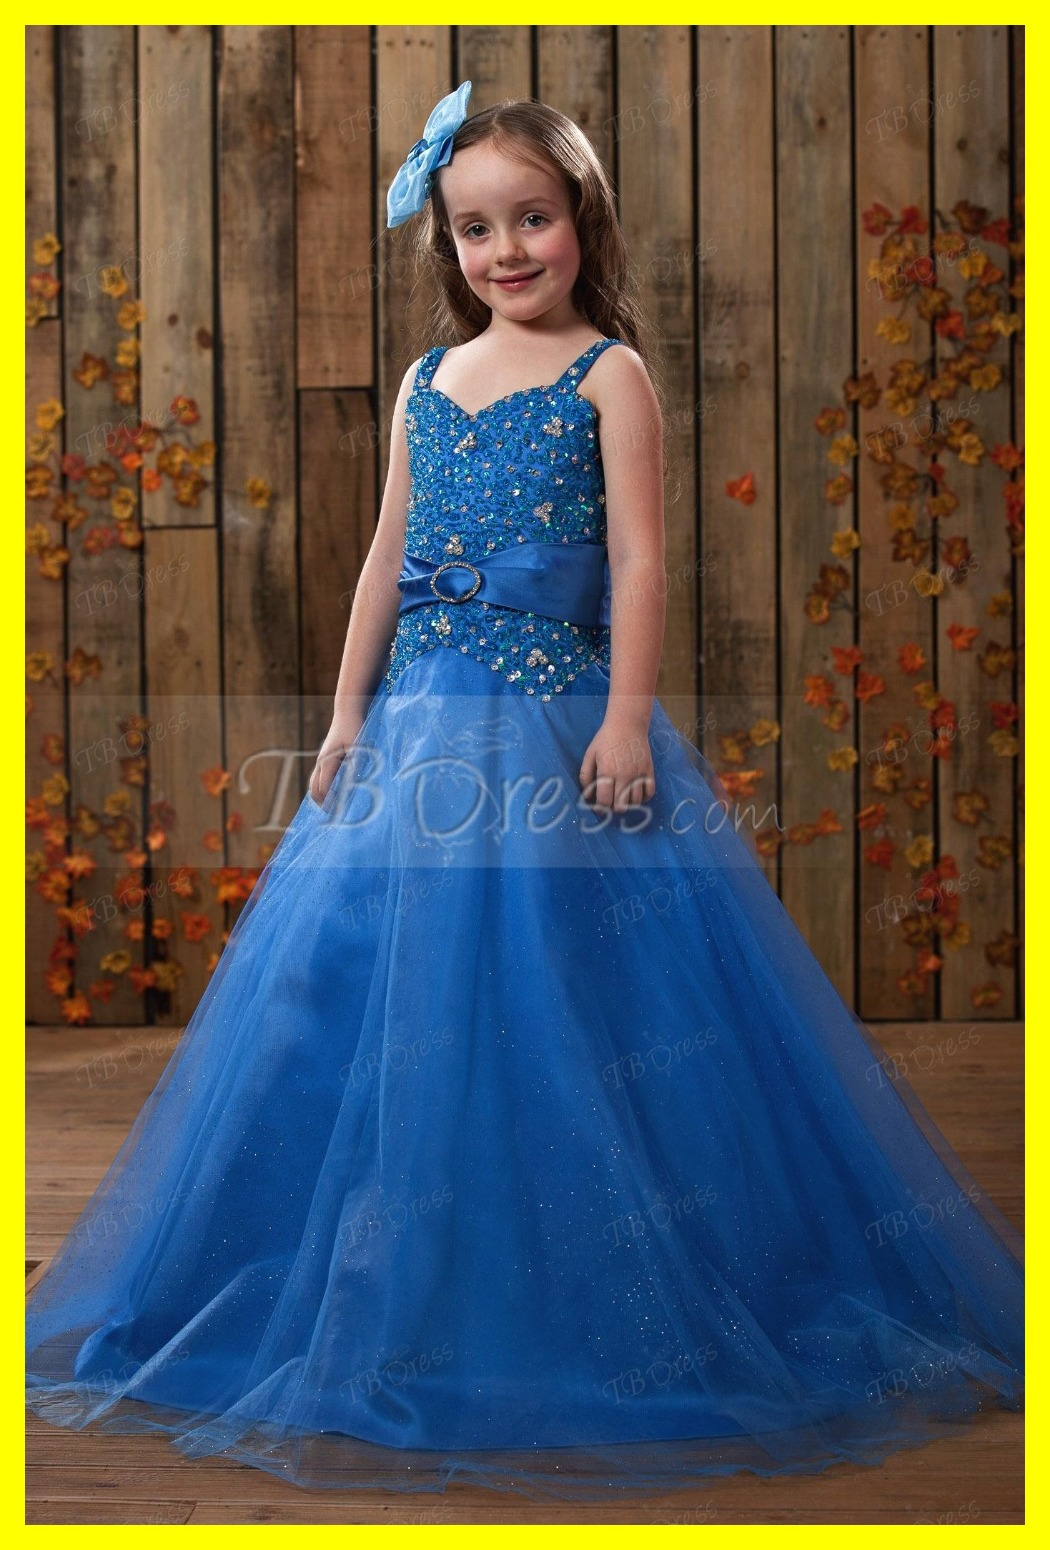 Dresses For Flower Girls Toddler Special Occasion Girl With Tulle Champagne Dress Little Sweetheart Spaghetti Straps 2015 Outlet(China (Mainland))